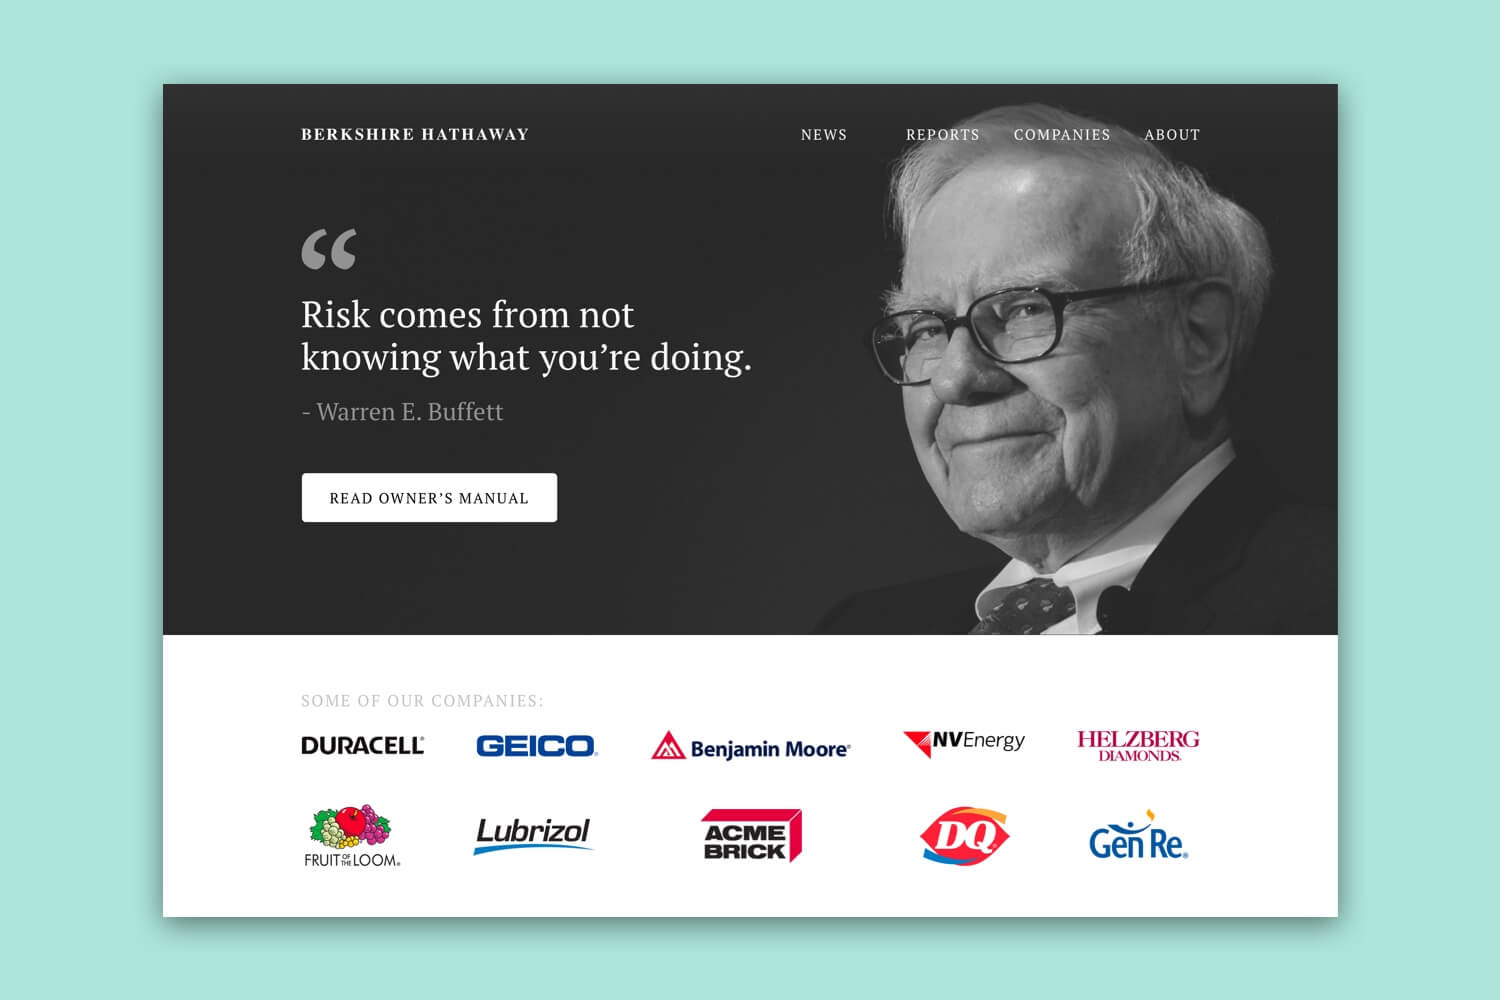 Redesigned header of Berkshire Hathaway's website that shows Warren Buffet.